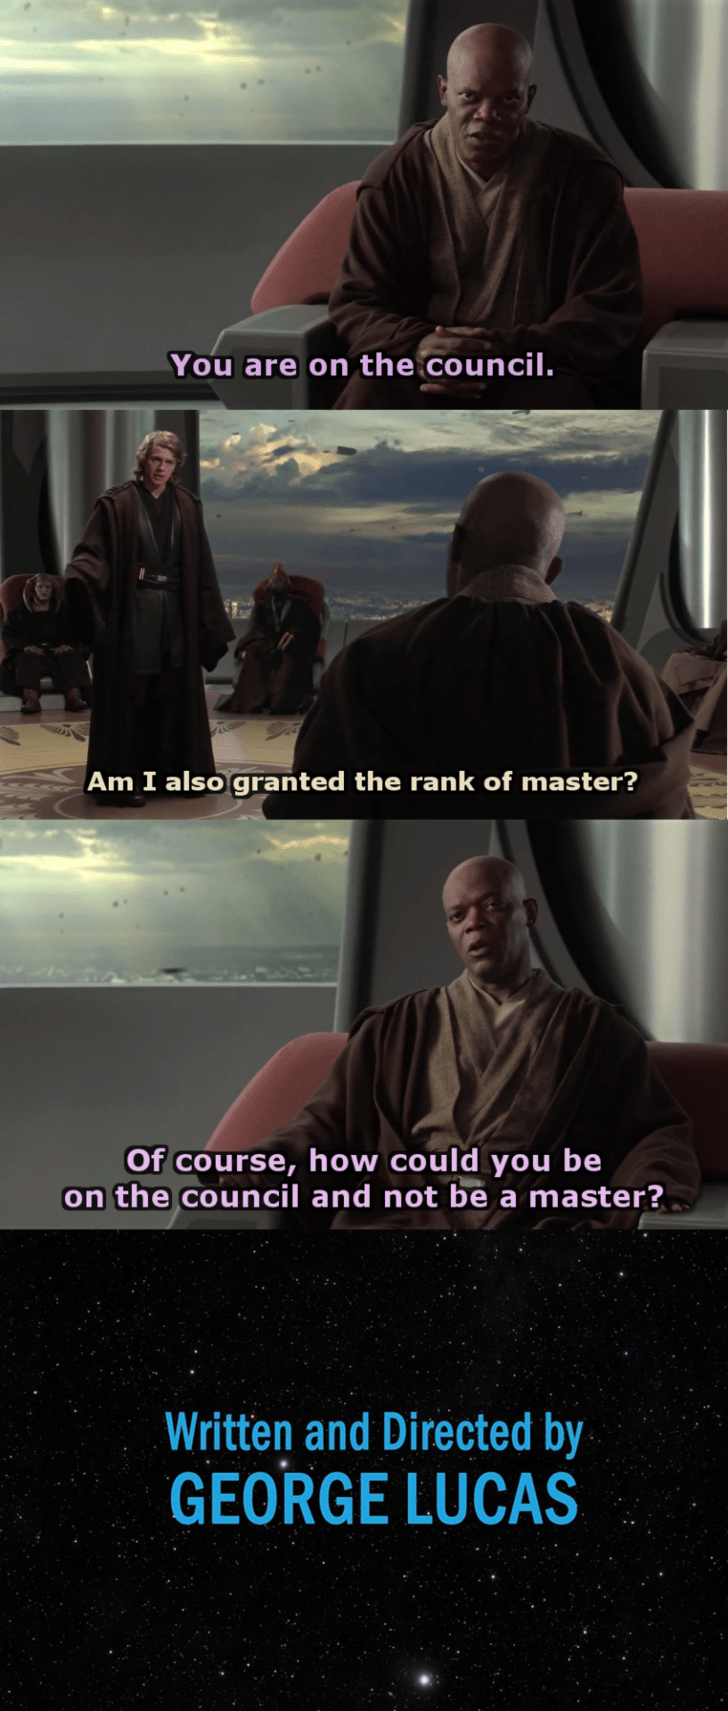 star wars meme - Movie - You are on the council. Am I also granted the rank of master? Of course, how could you be on the council and not be a master? Written and Directed by GEORGE LUCAS